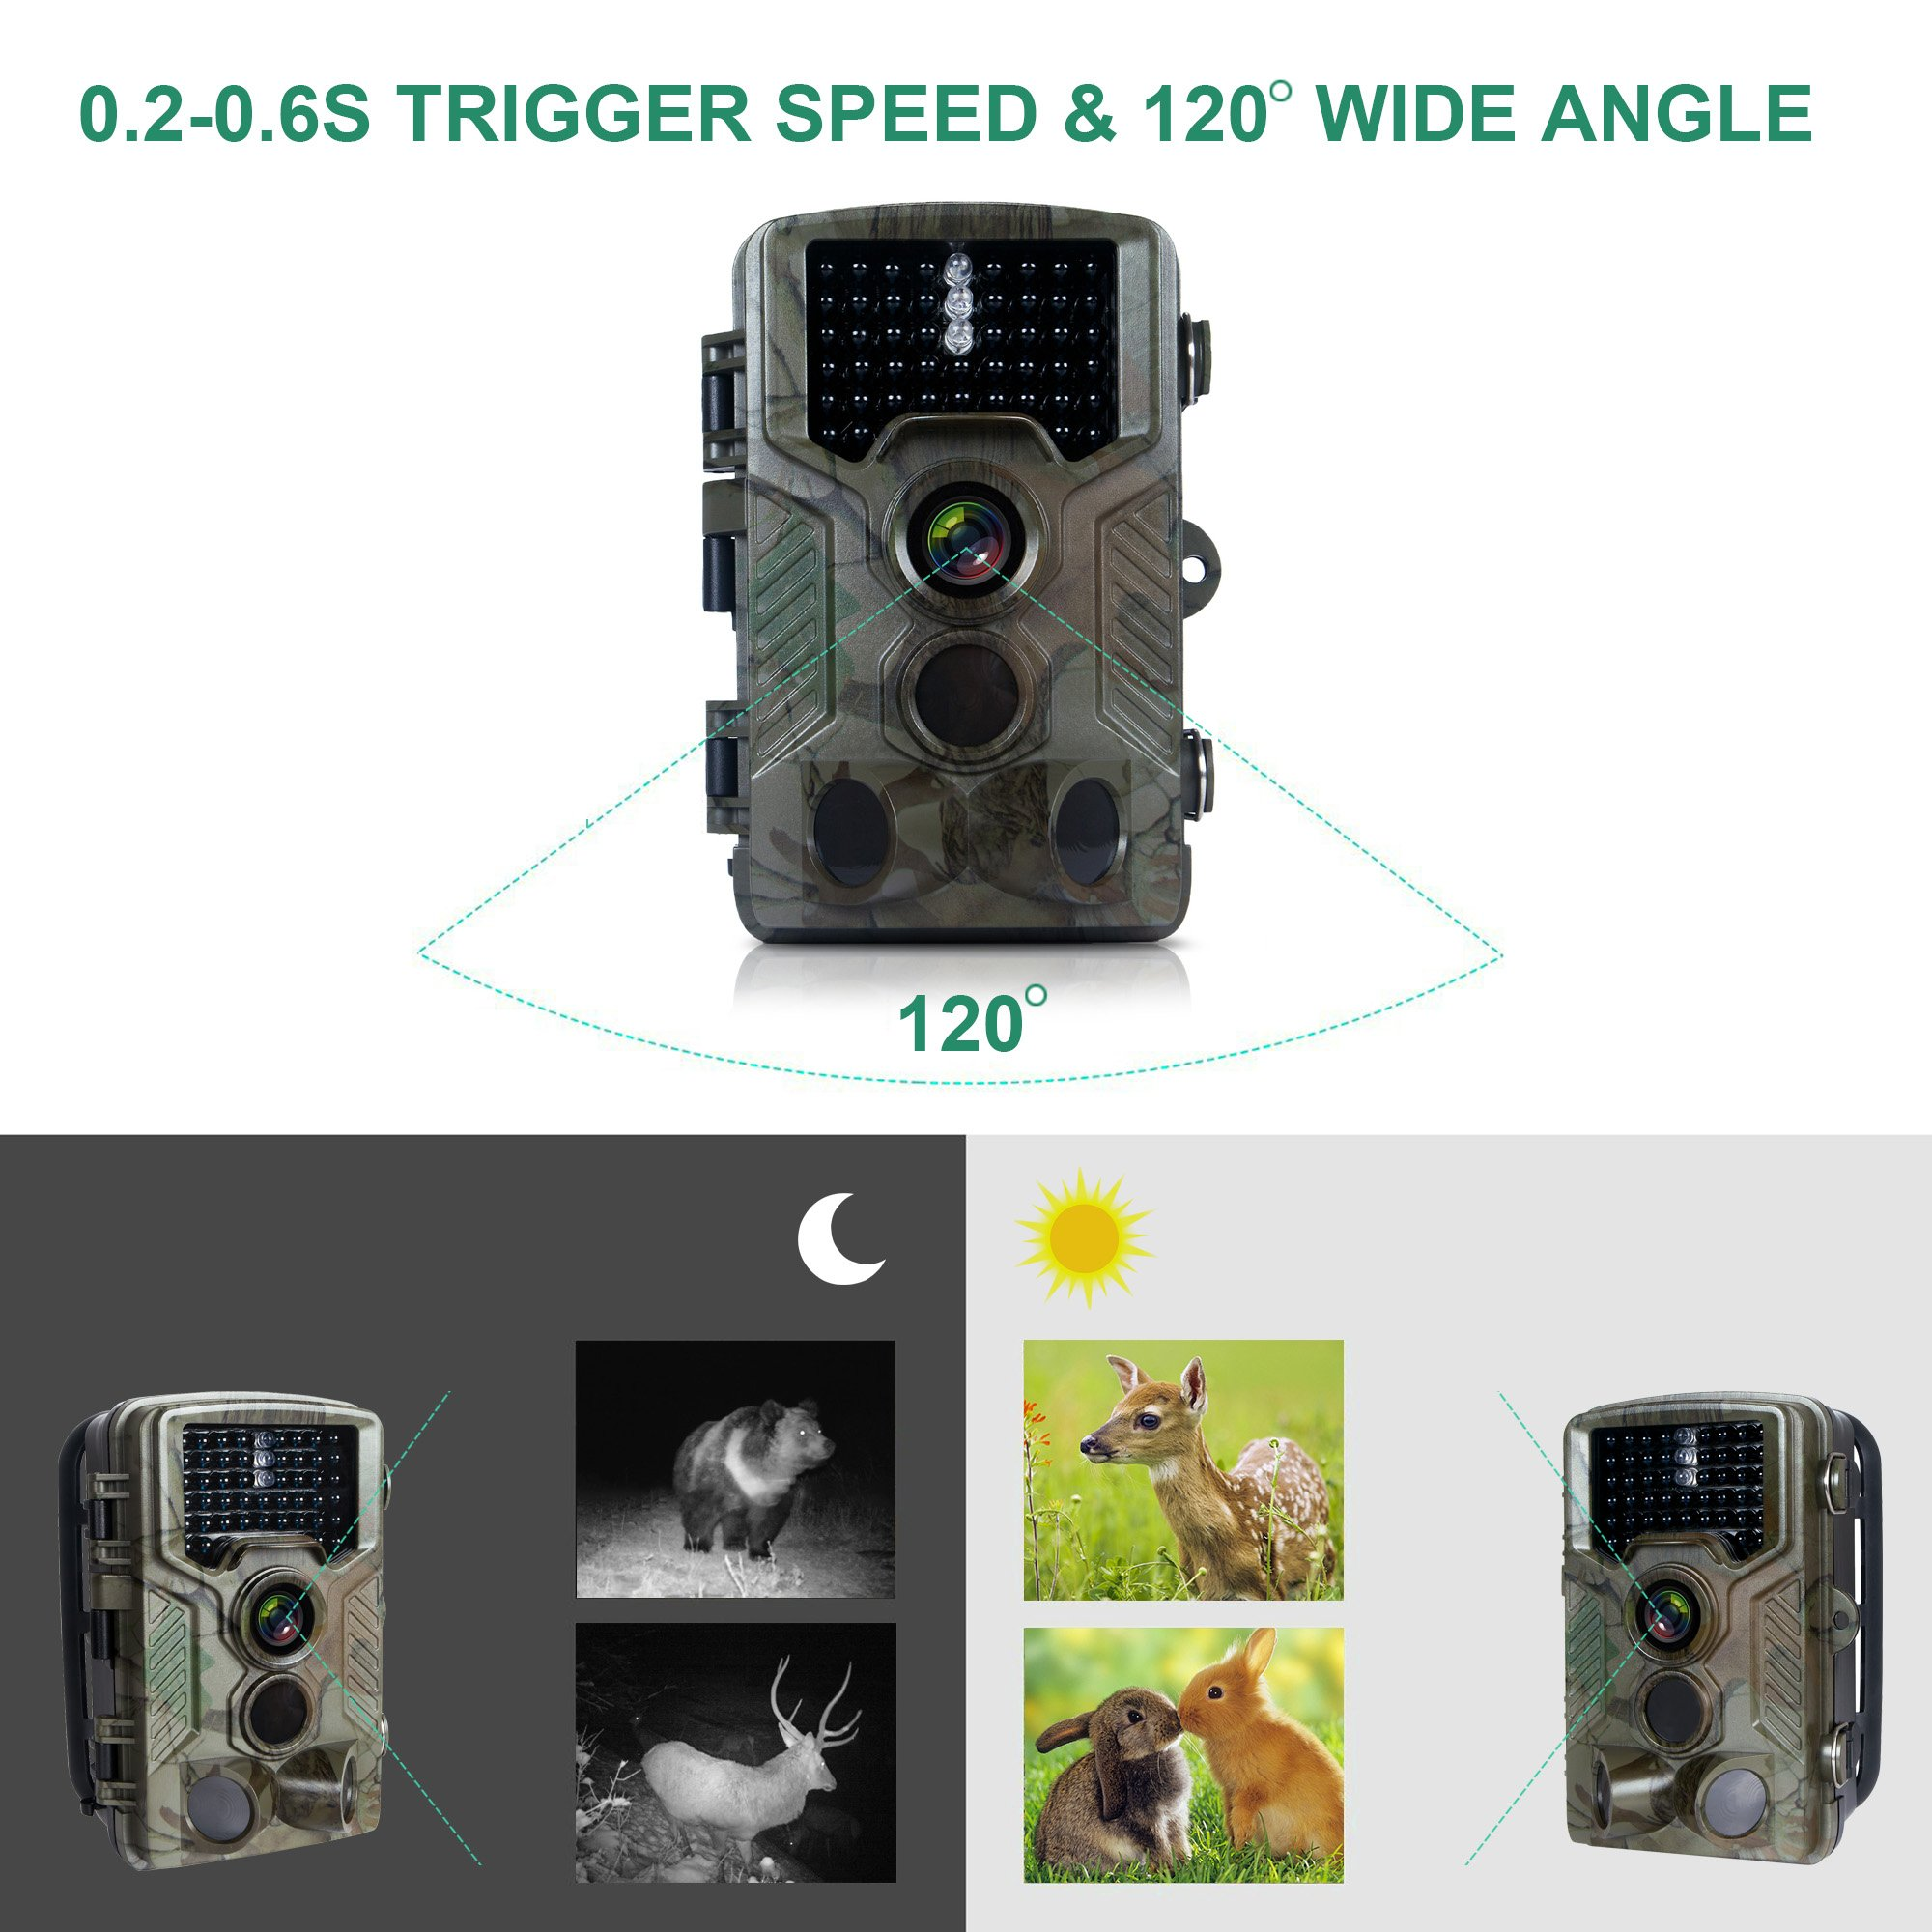 FLAGPOWER Hunting Trail Camera, 16MP 1080P 0.2s Trigger Time Wildlife Game Camera with 2.4'' LCD 850nm Upgrading IR LEDs Night Vision up to 75ft/2.3m IP56 Spray Water Protected Design by FLAGPOWER (Image #4)